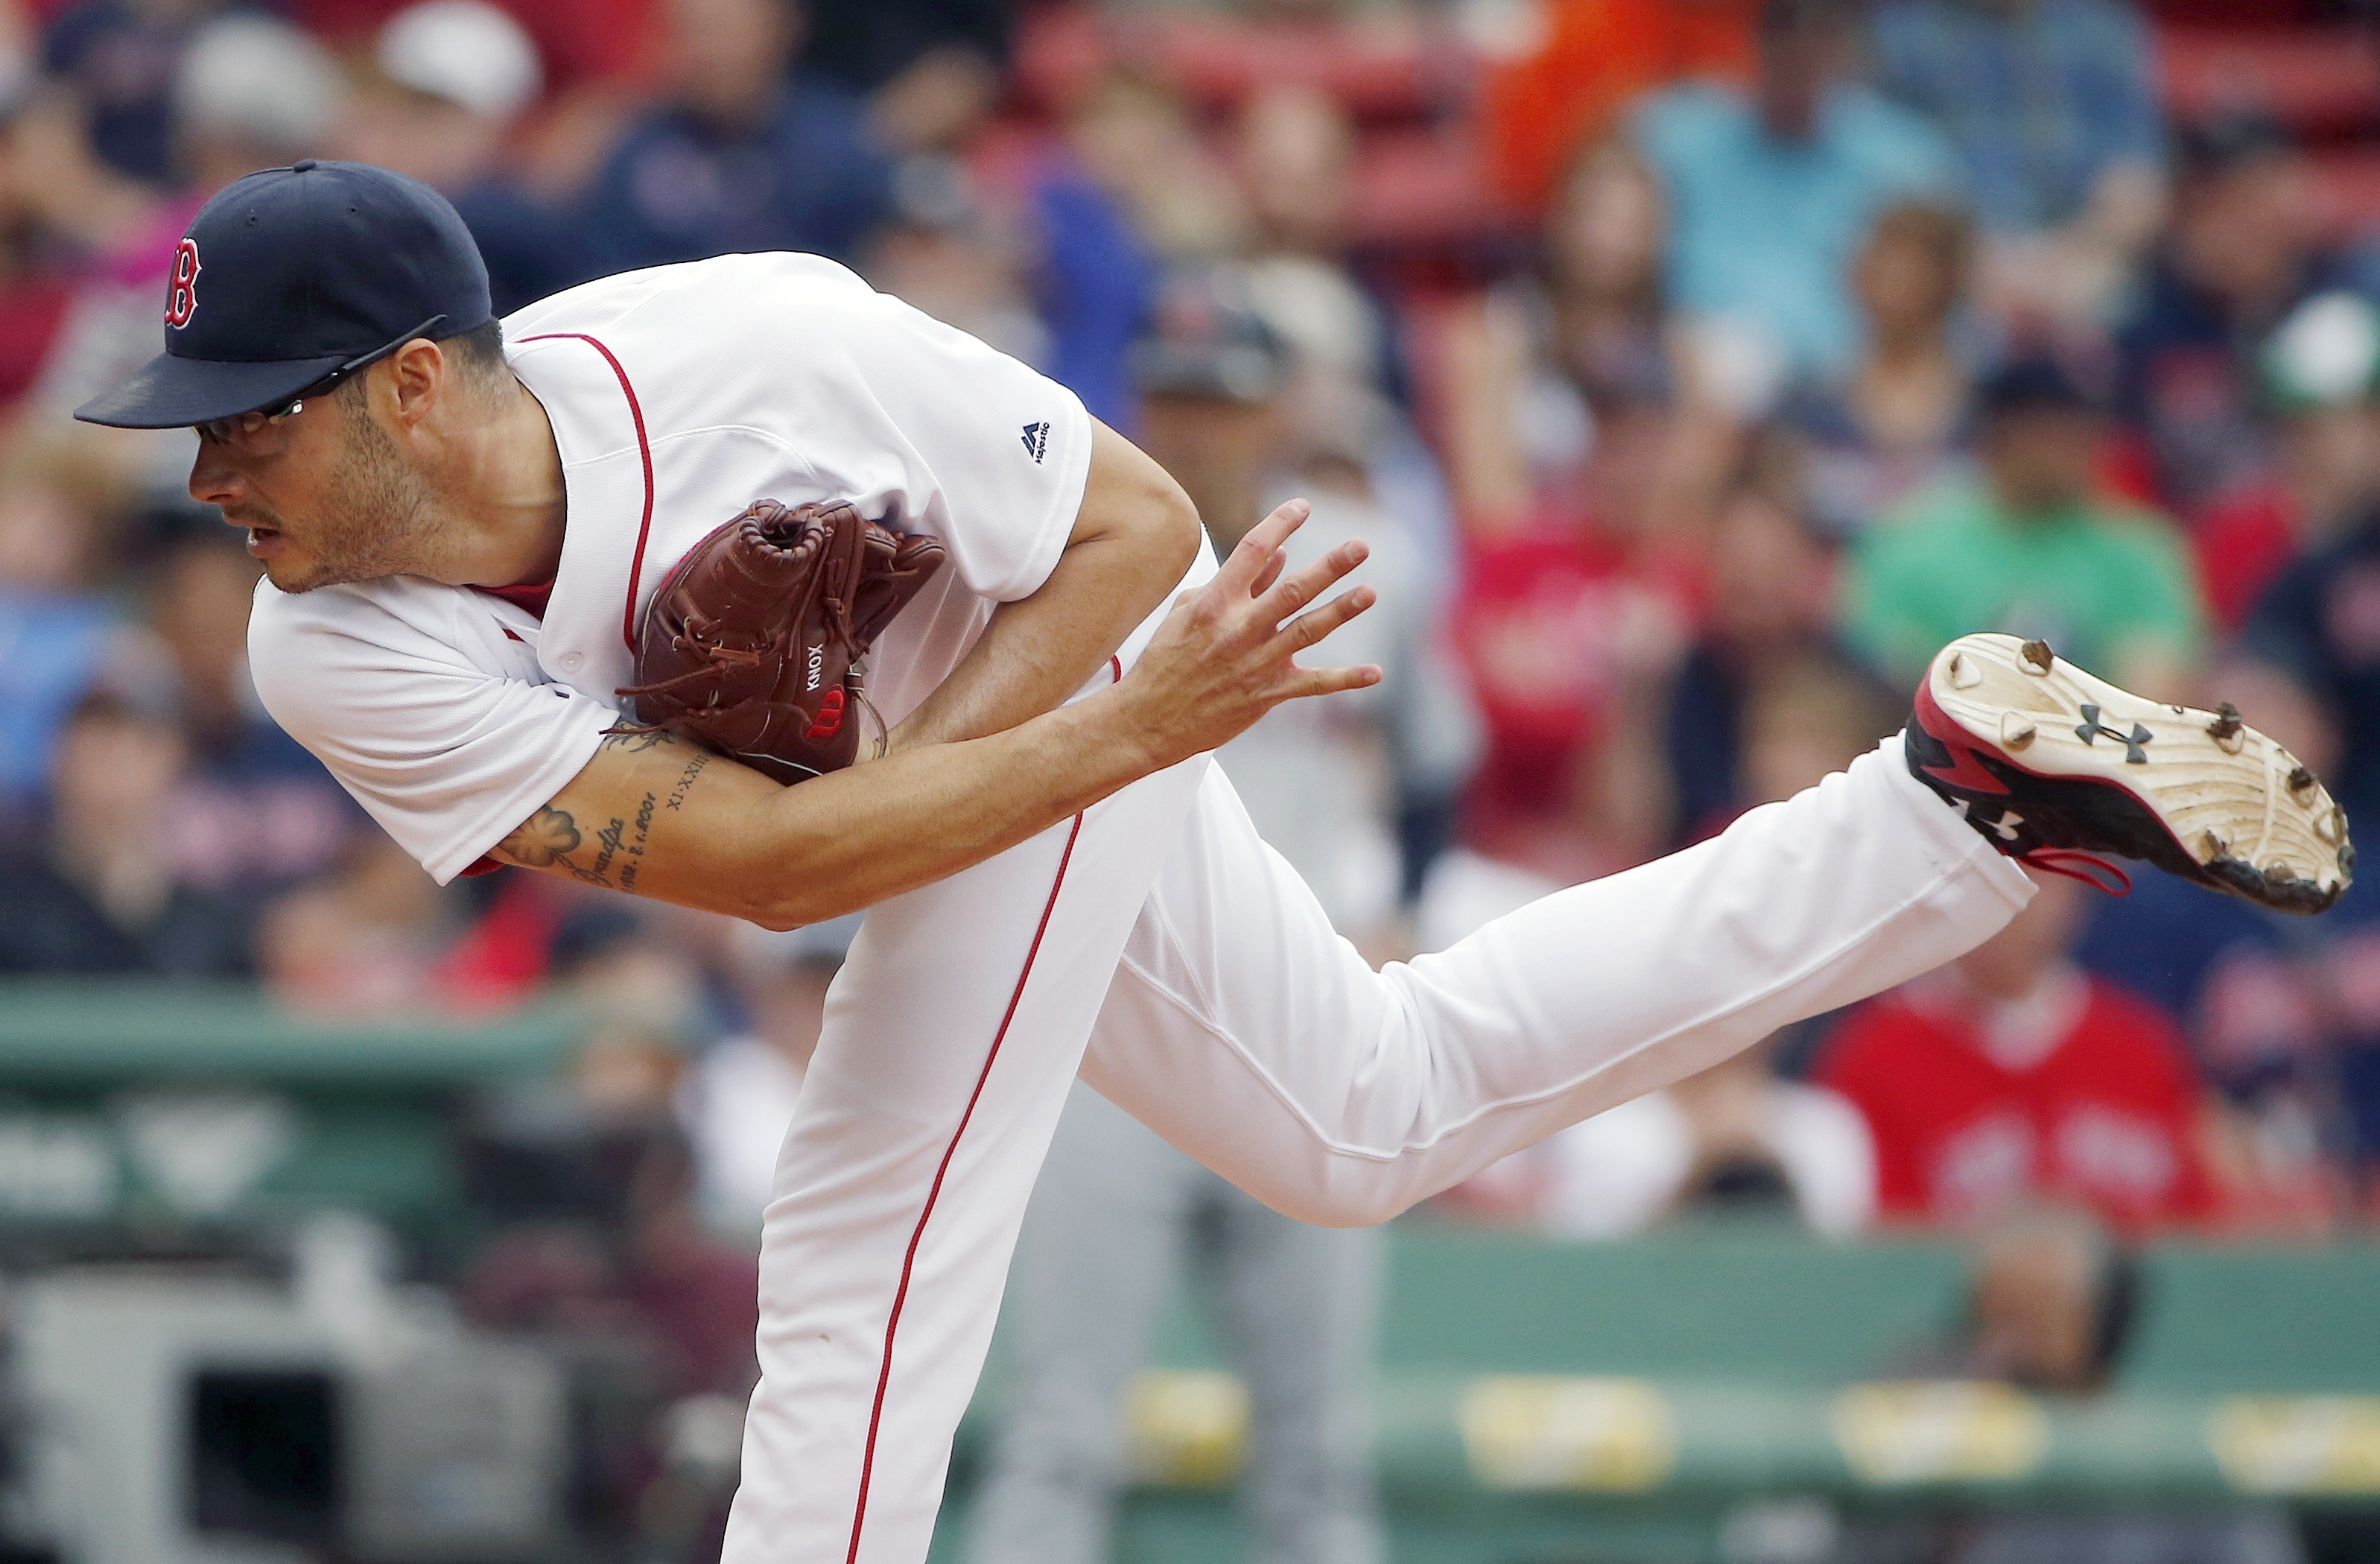 Boston Red Sox's Joe Kelly pitches during the first inning of a baseball game against the Cleveland Indians in Boston, Saturday, May 21, 2016. (AP Photo/Michael Dwyer)